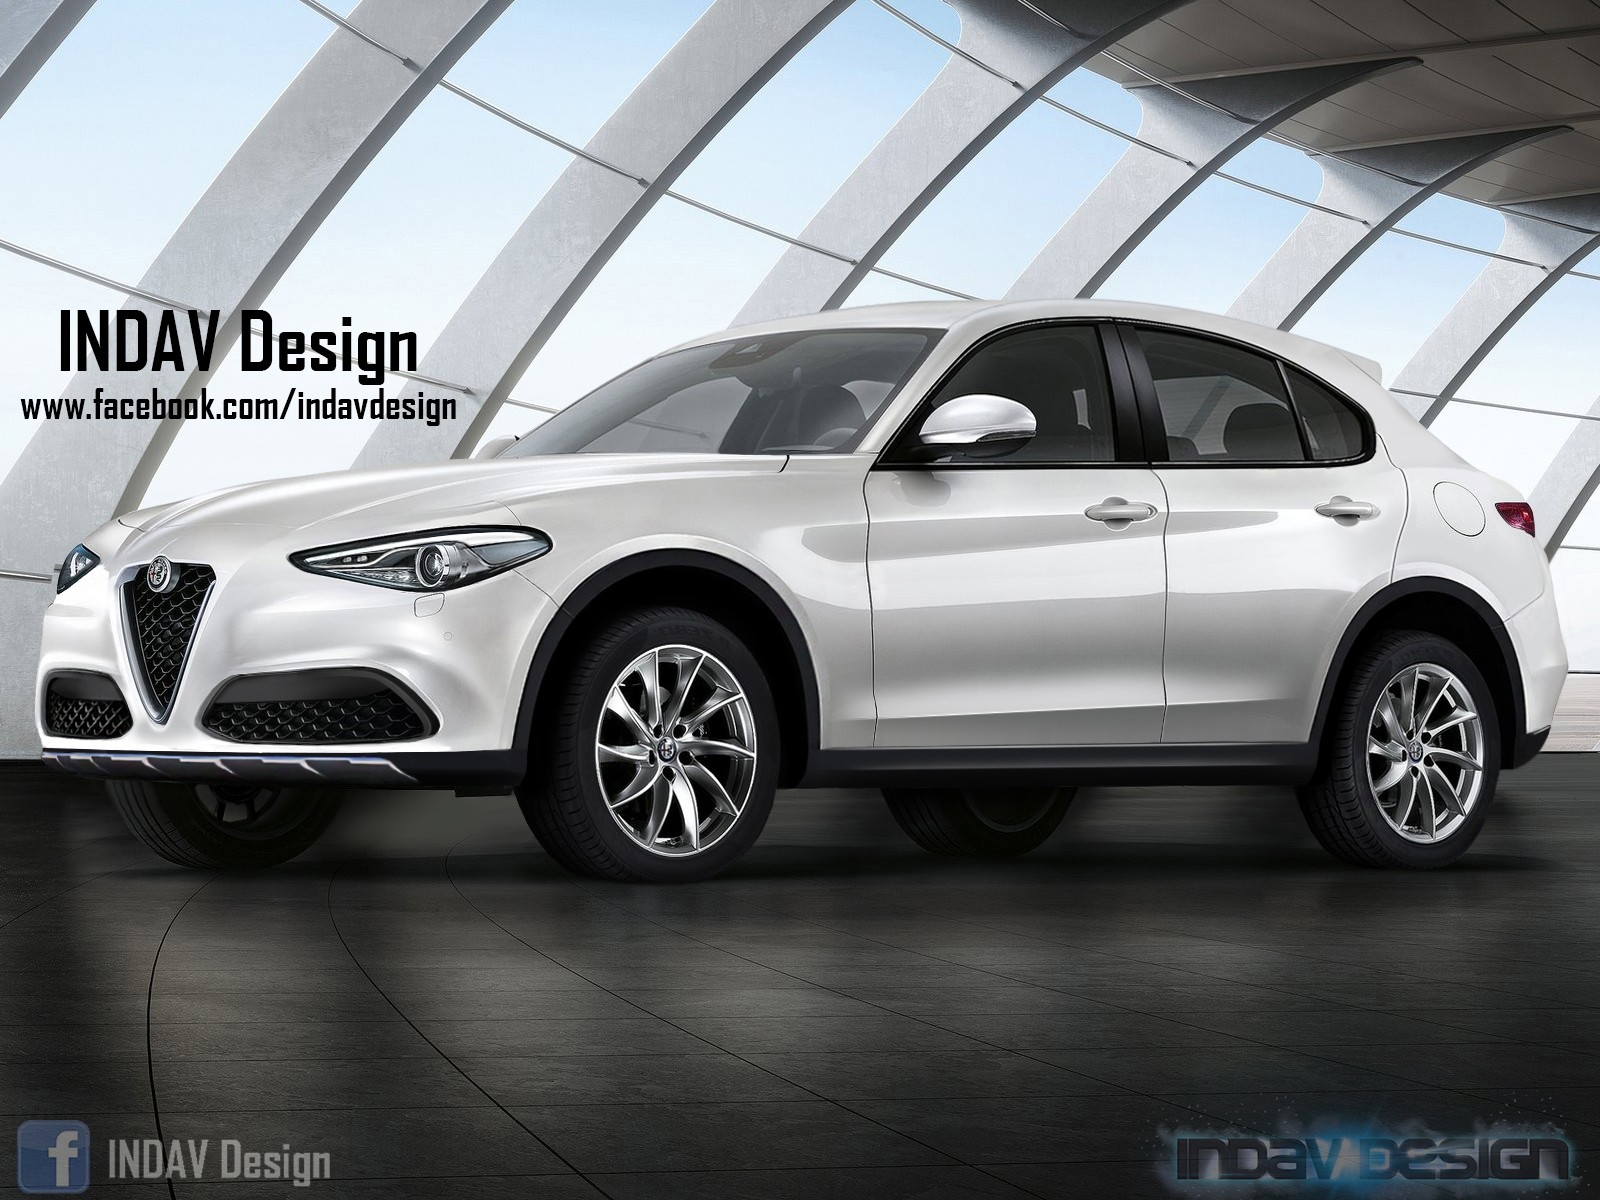 alfa romeo stelvio tipo 949 d suv rendered by indav design autoevolution. Black Bedroom Furniture Sets. Home Design Ideas